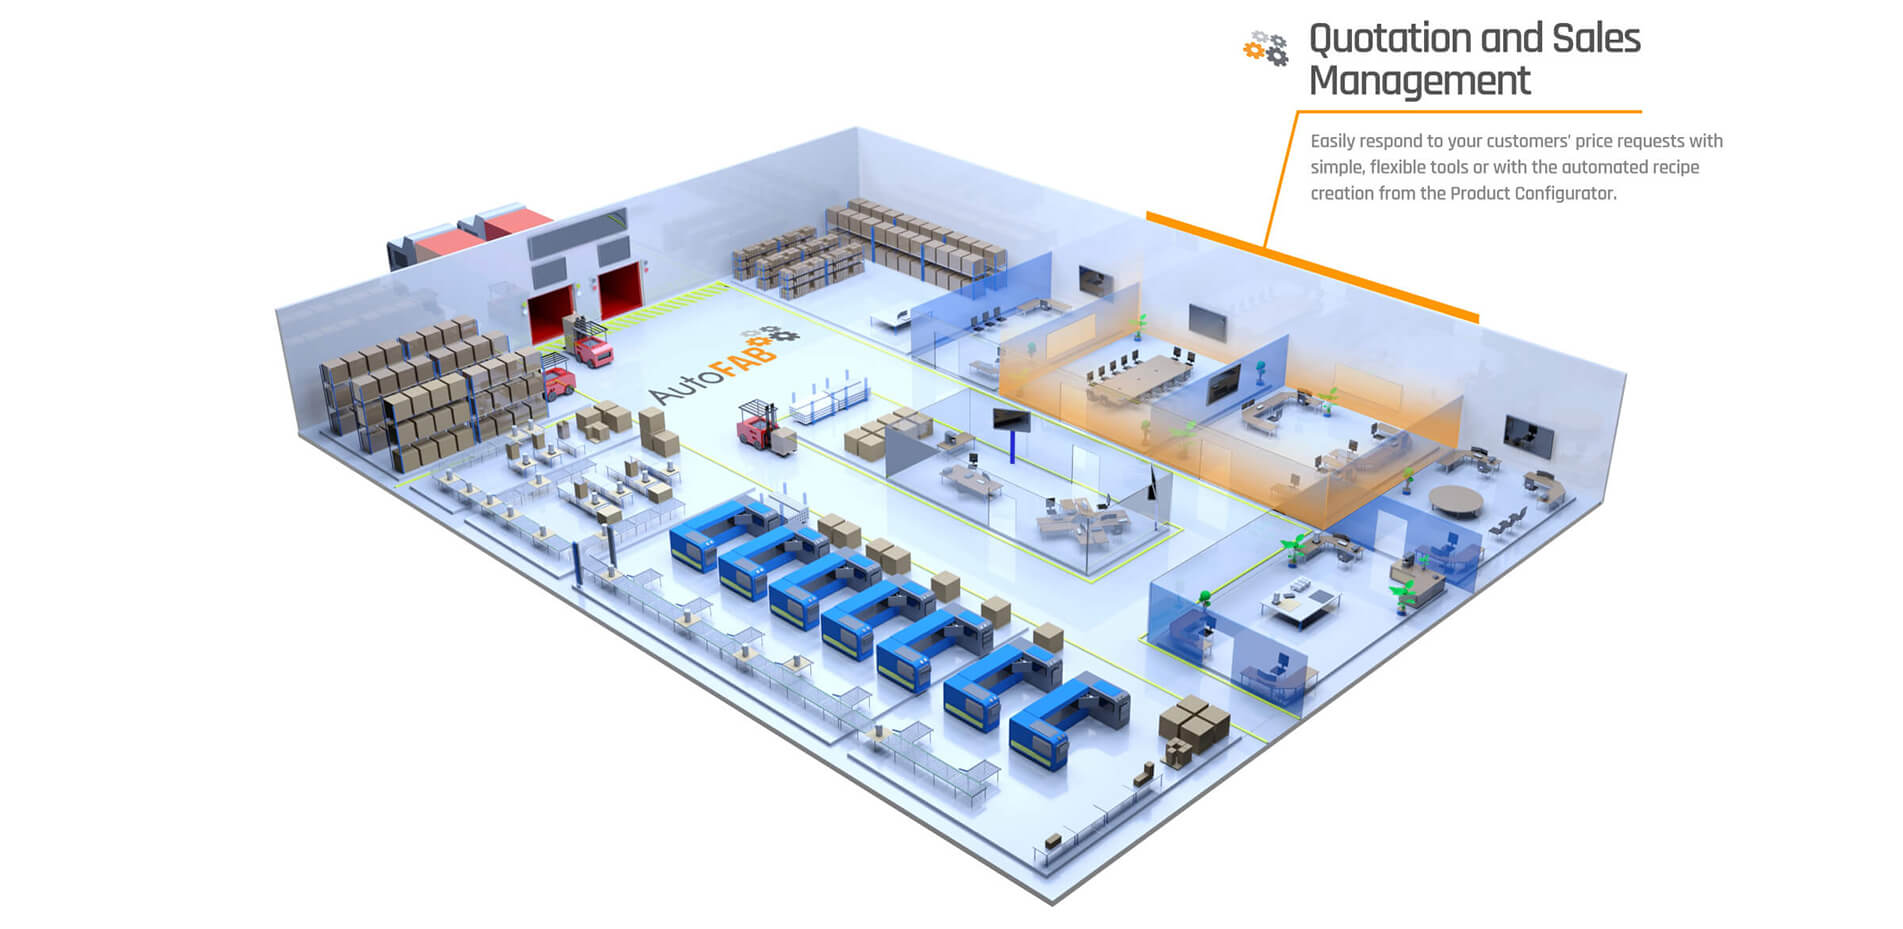 autofab Quotation and Sales Management